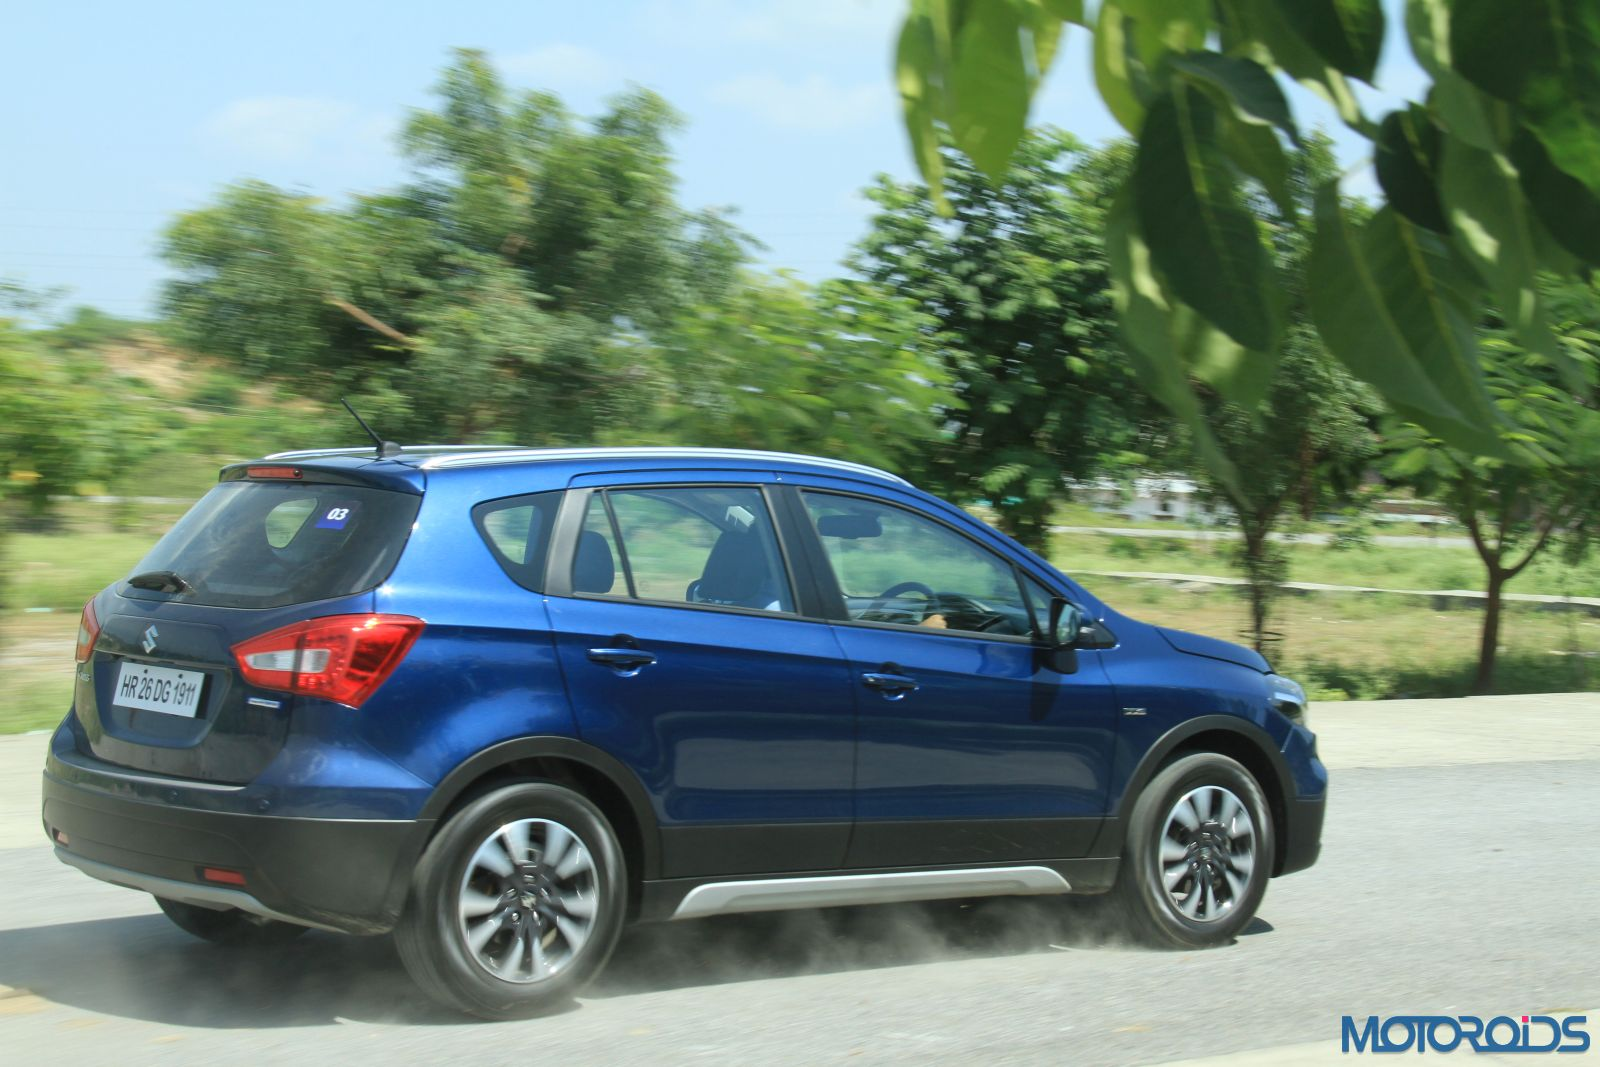 New-Maruti-Suzuki-S-Cross-Alpha-Review-action-shots2